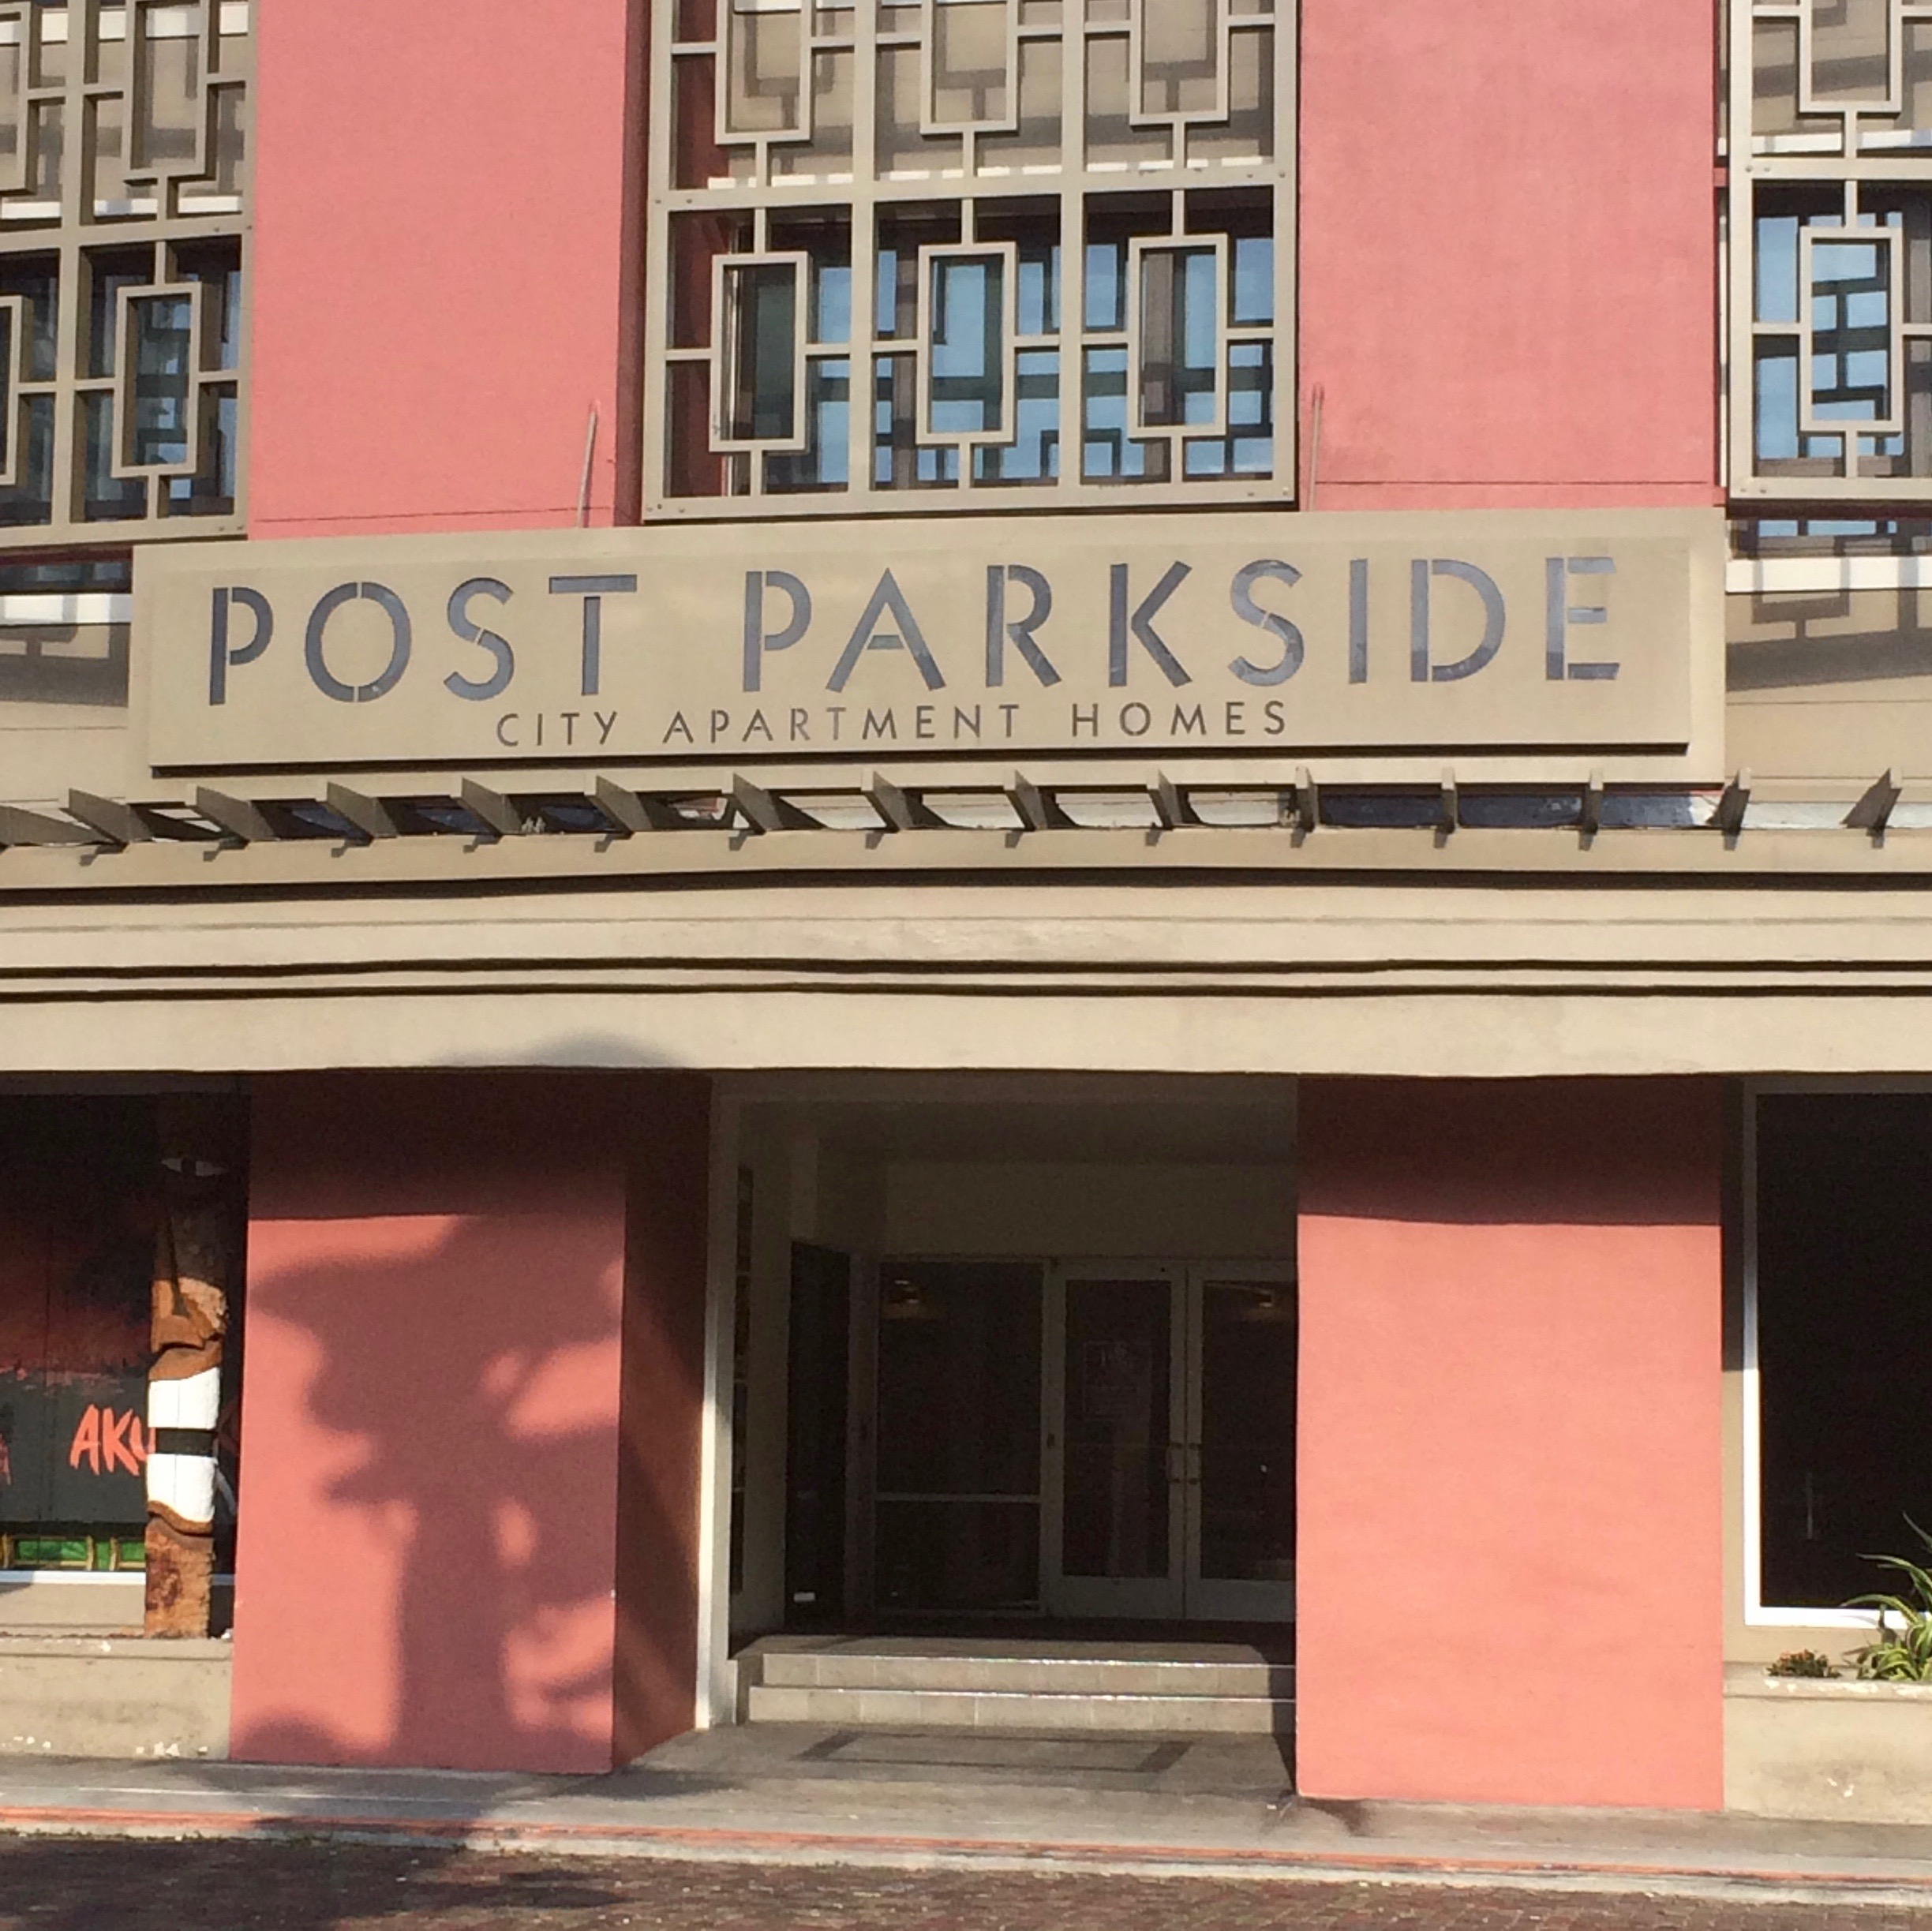 Post Parkside Entrance